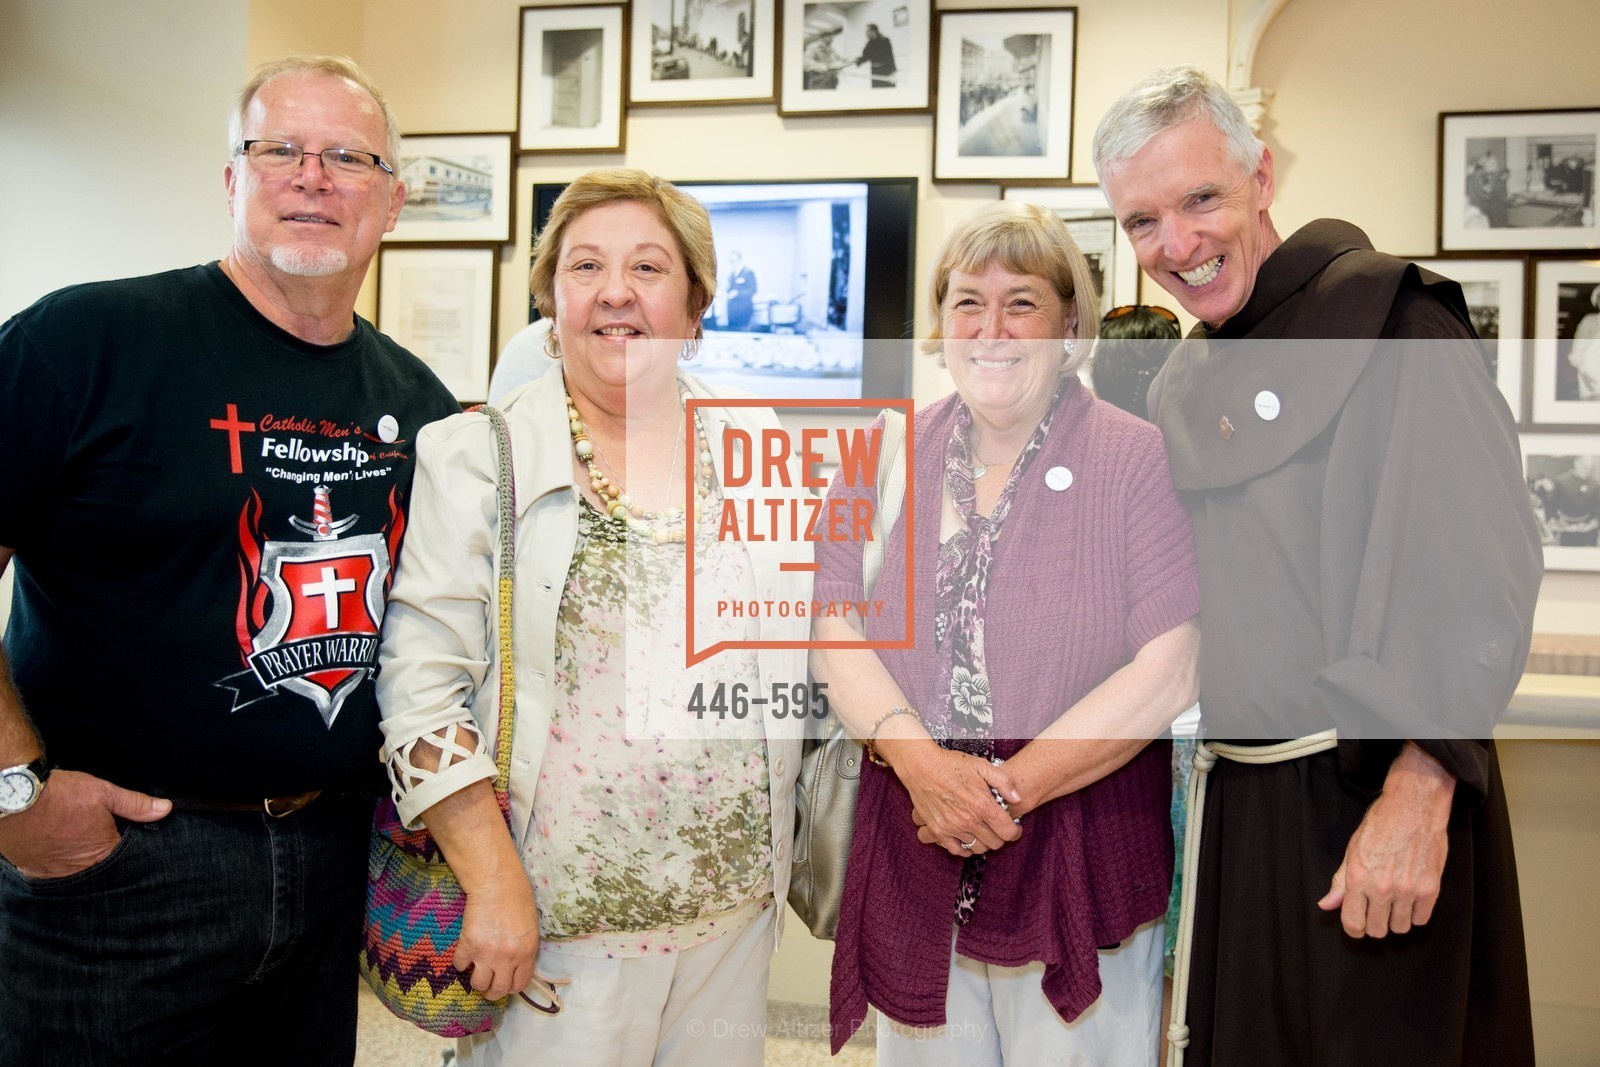 Jeff Perkins, Sharon Perkins, Gari Merchesen, Father Dan Lackie, ST. ANTHONY'S Dining Room Ribbon Cutting Ceremony, US, October 4th, 2014,Drew Altizer, Drew Altizer Photography, full-service agency, private events, San Francisco photographer, photographer california